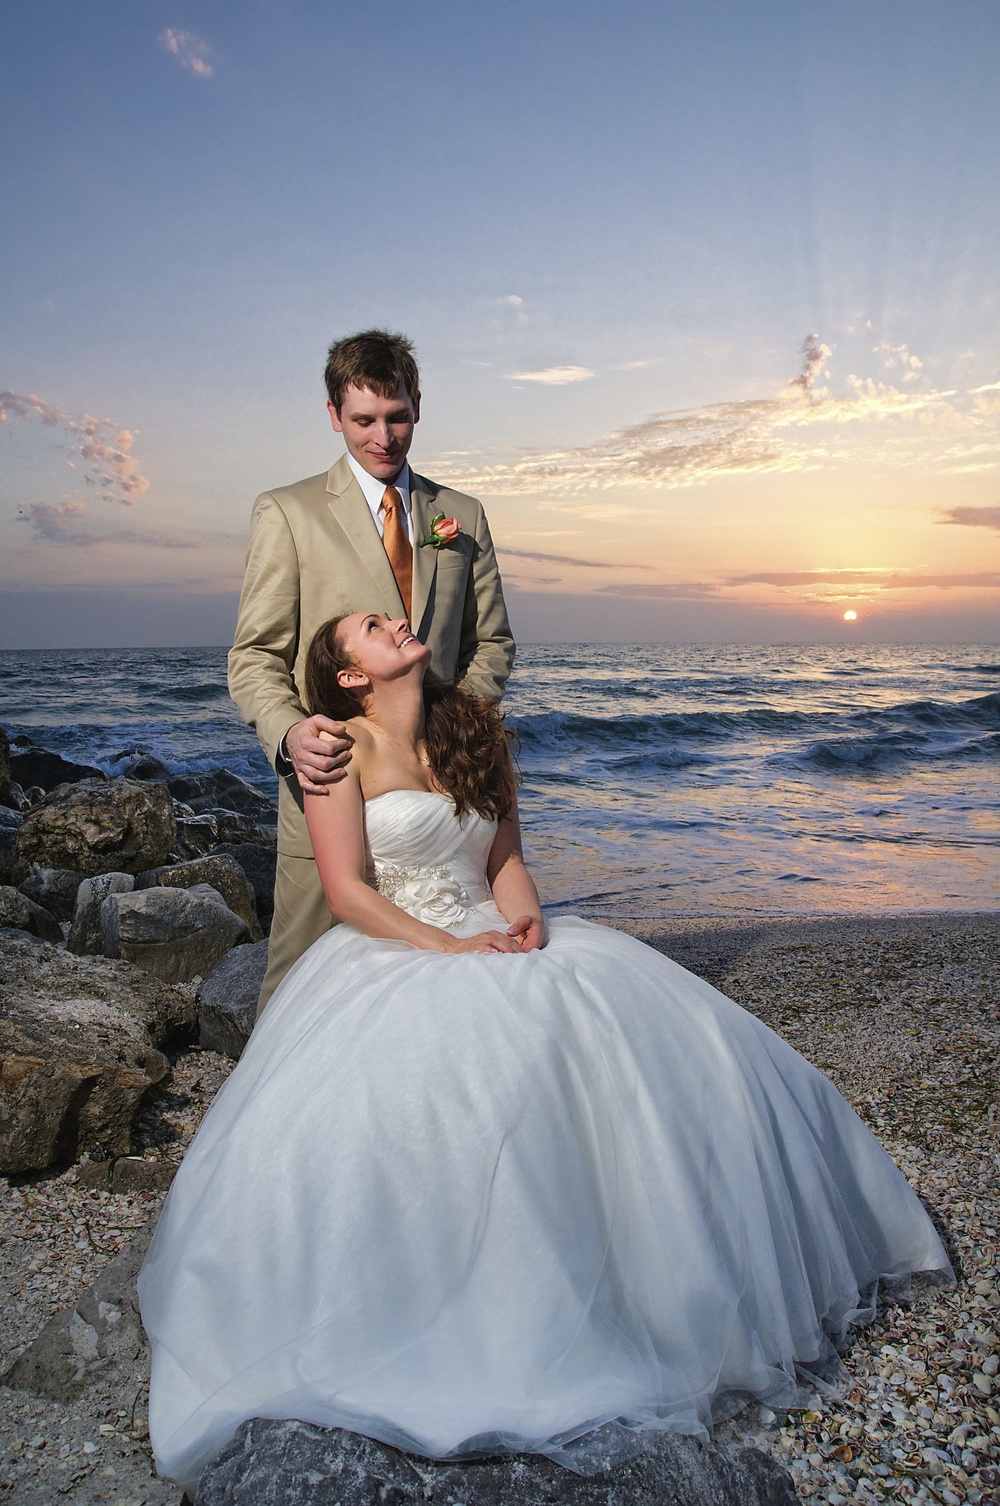 bride-groom-jetties-florida-sunset-beach-wedding-photography.jpg